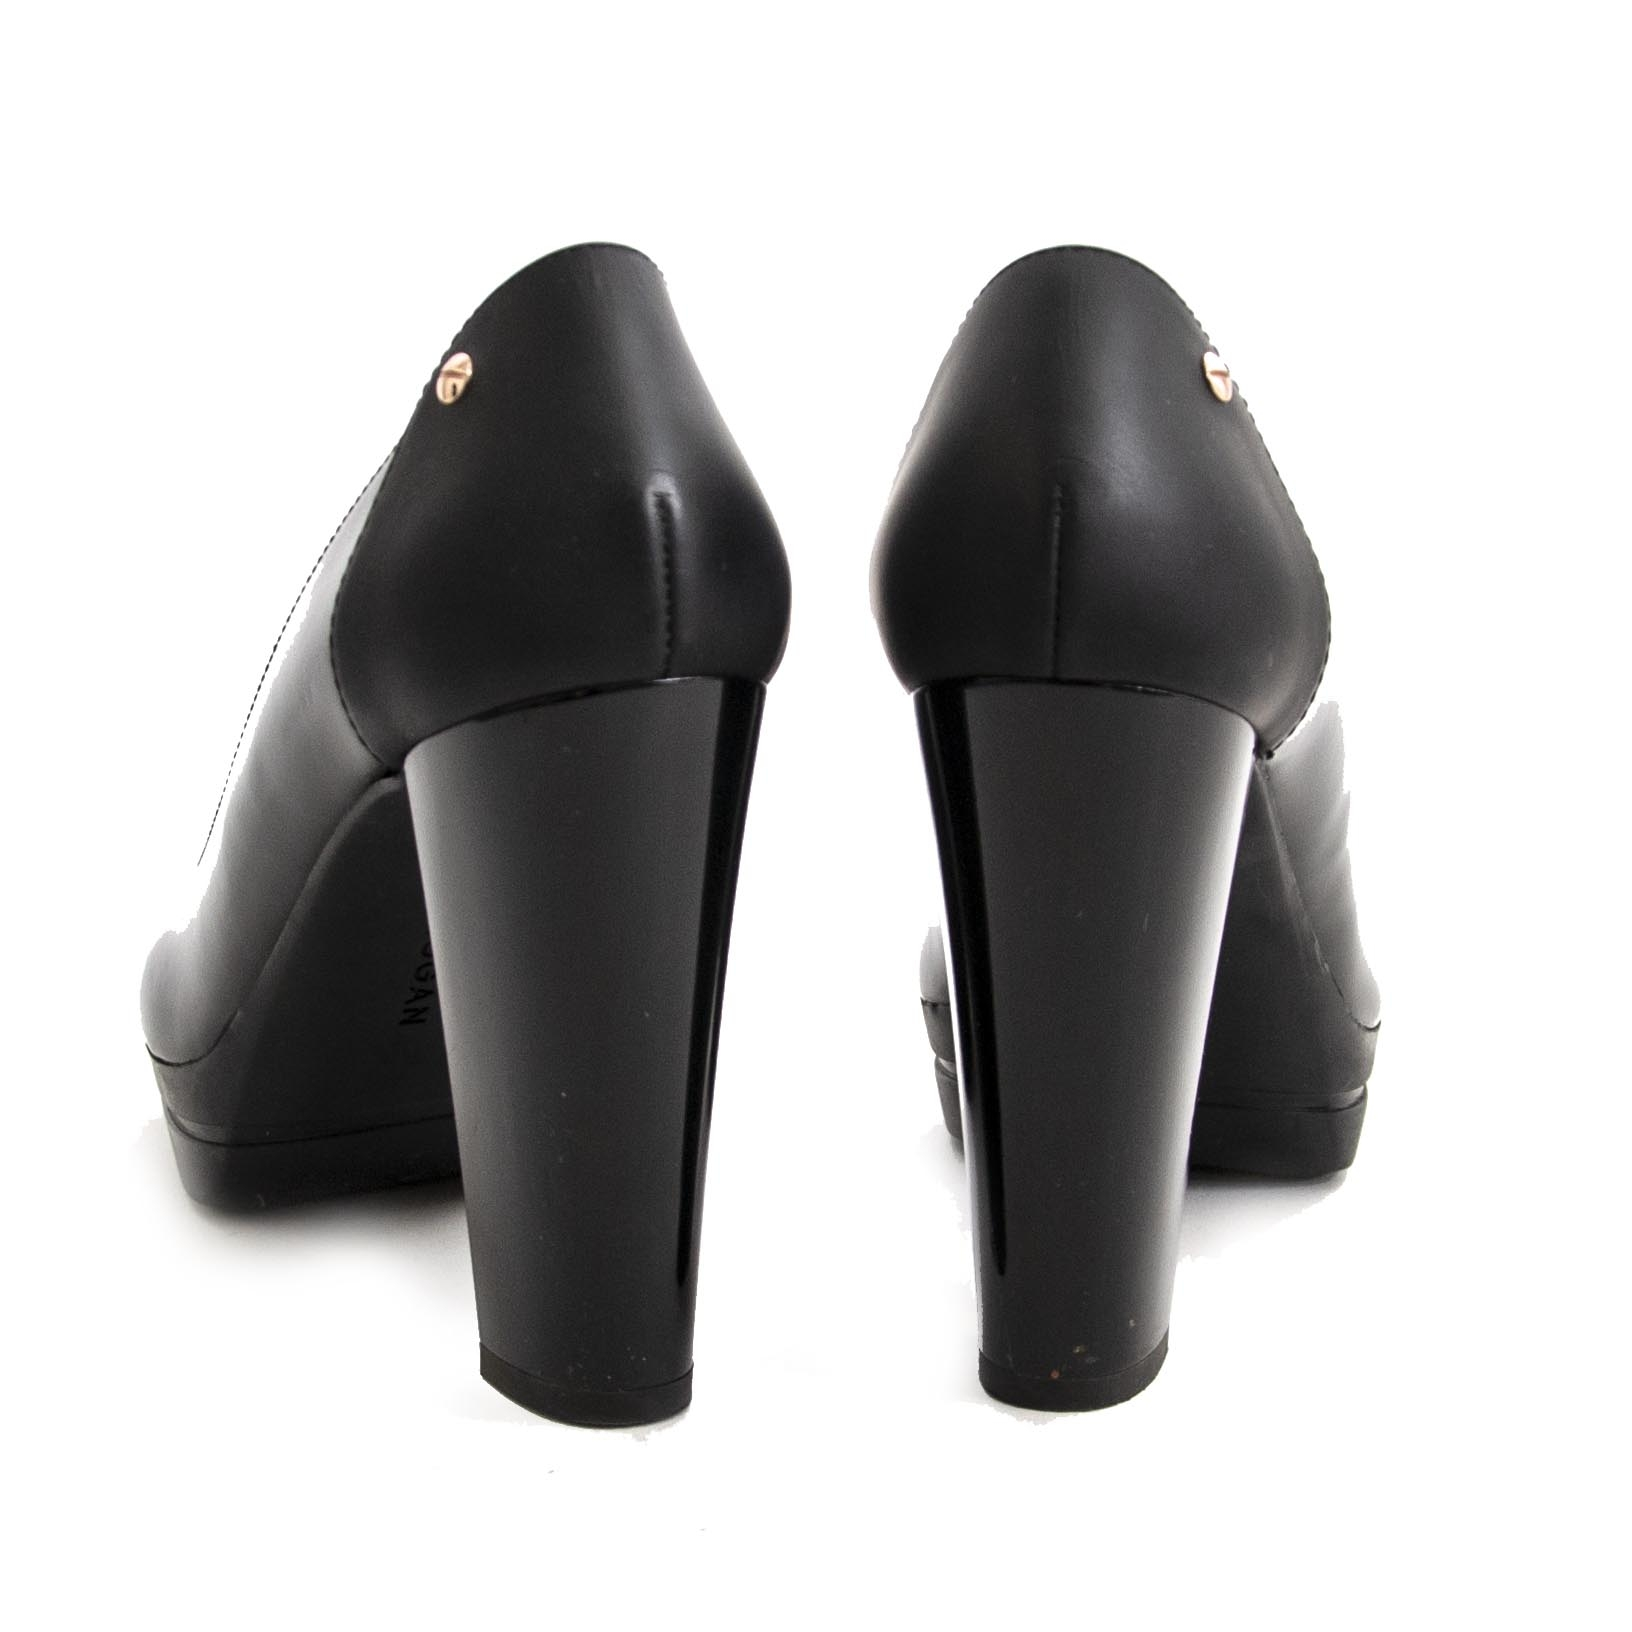 Authentieke Hogan pumps black - size 40 koop online LabelLOV webshop